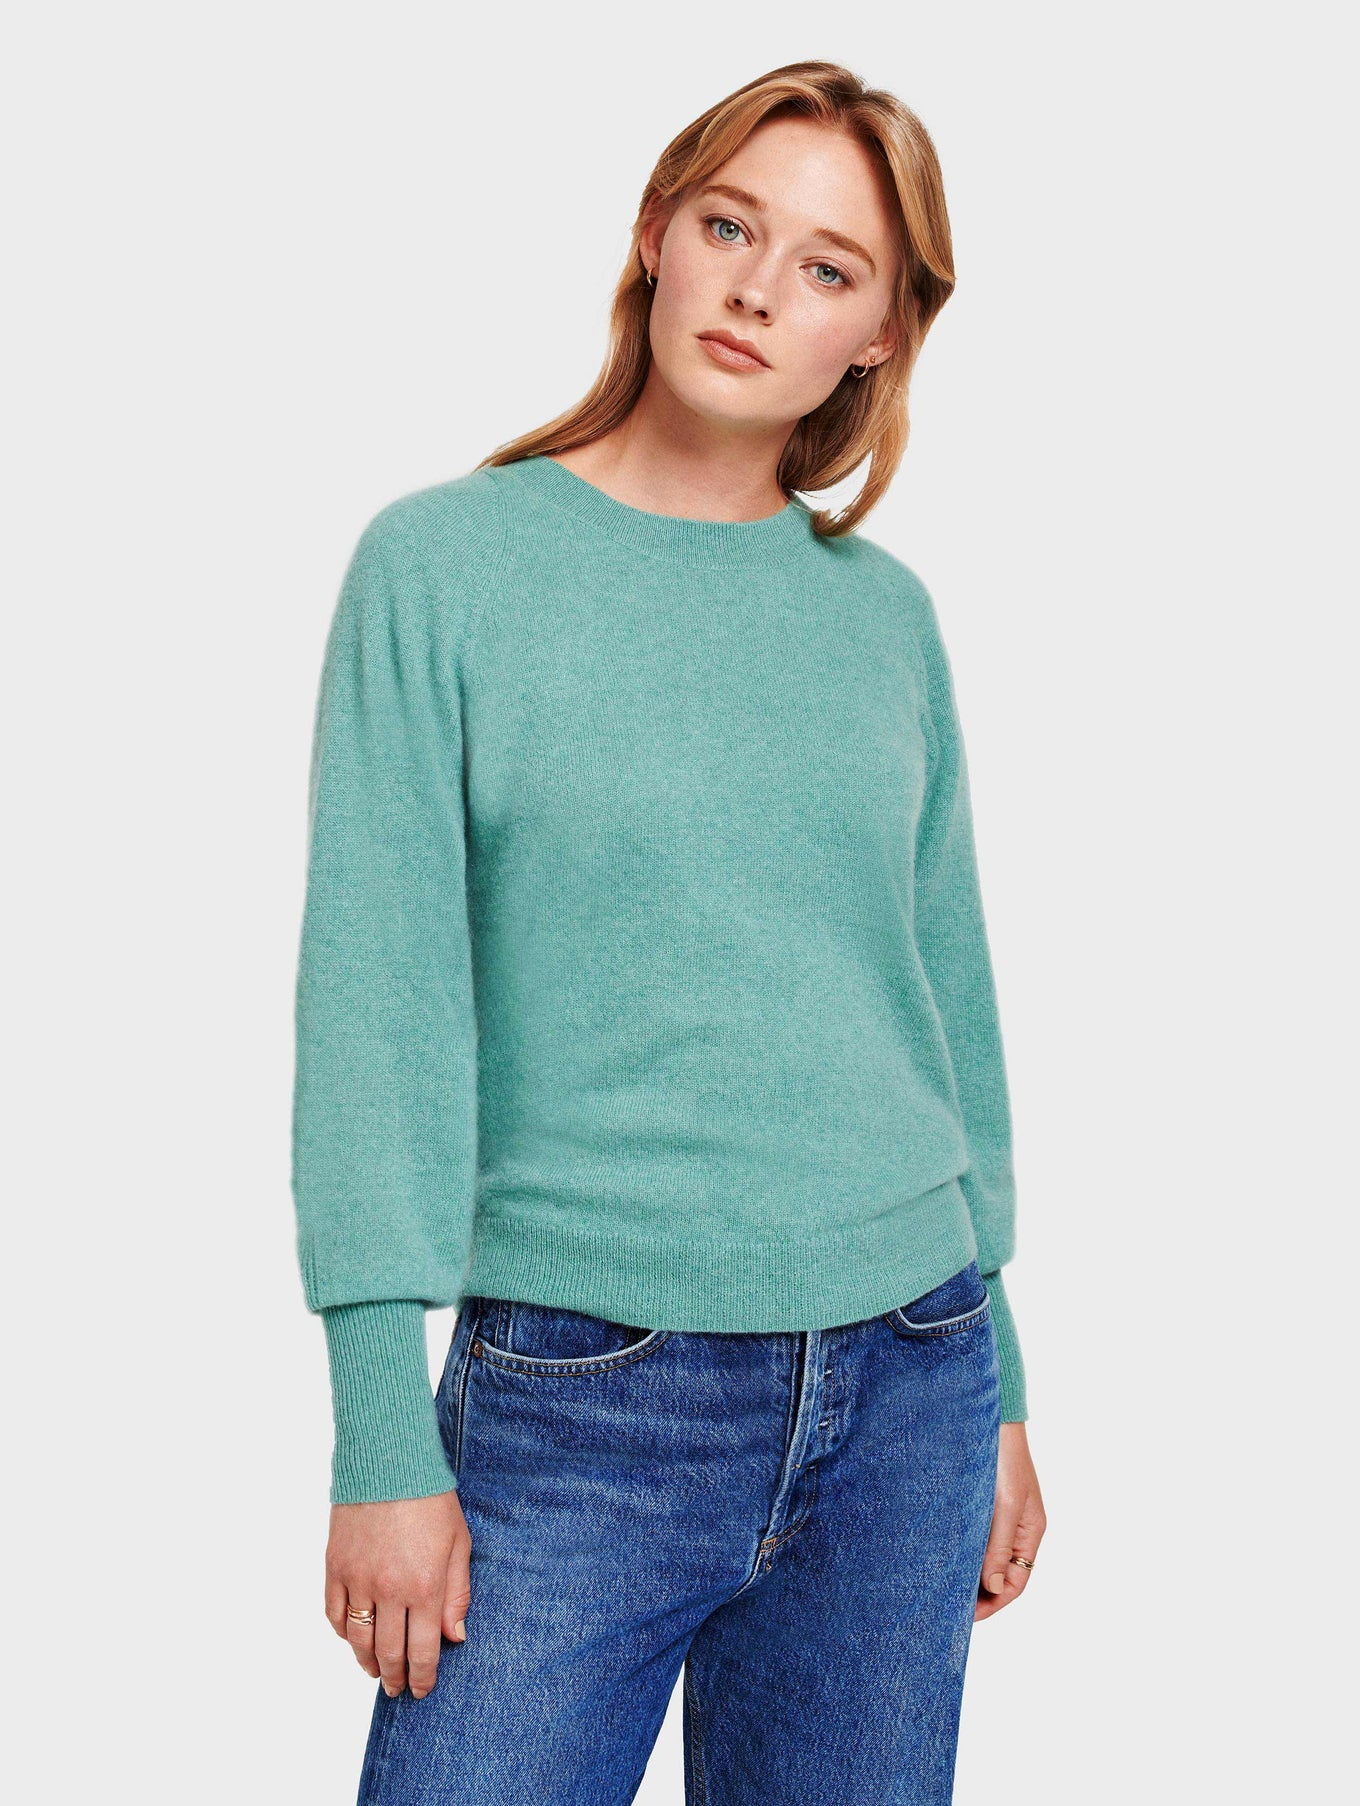 Cashmere Blouson Sleeve Crewneck - Dusty Jade Heather - Image 3